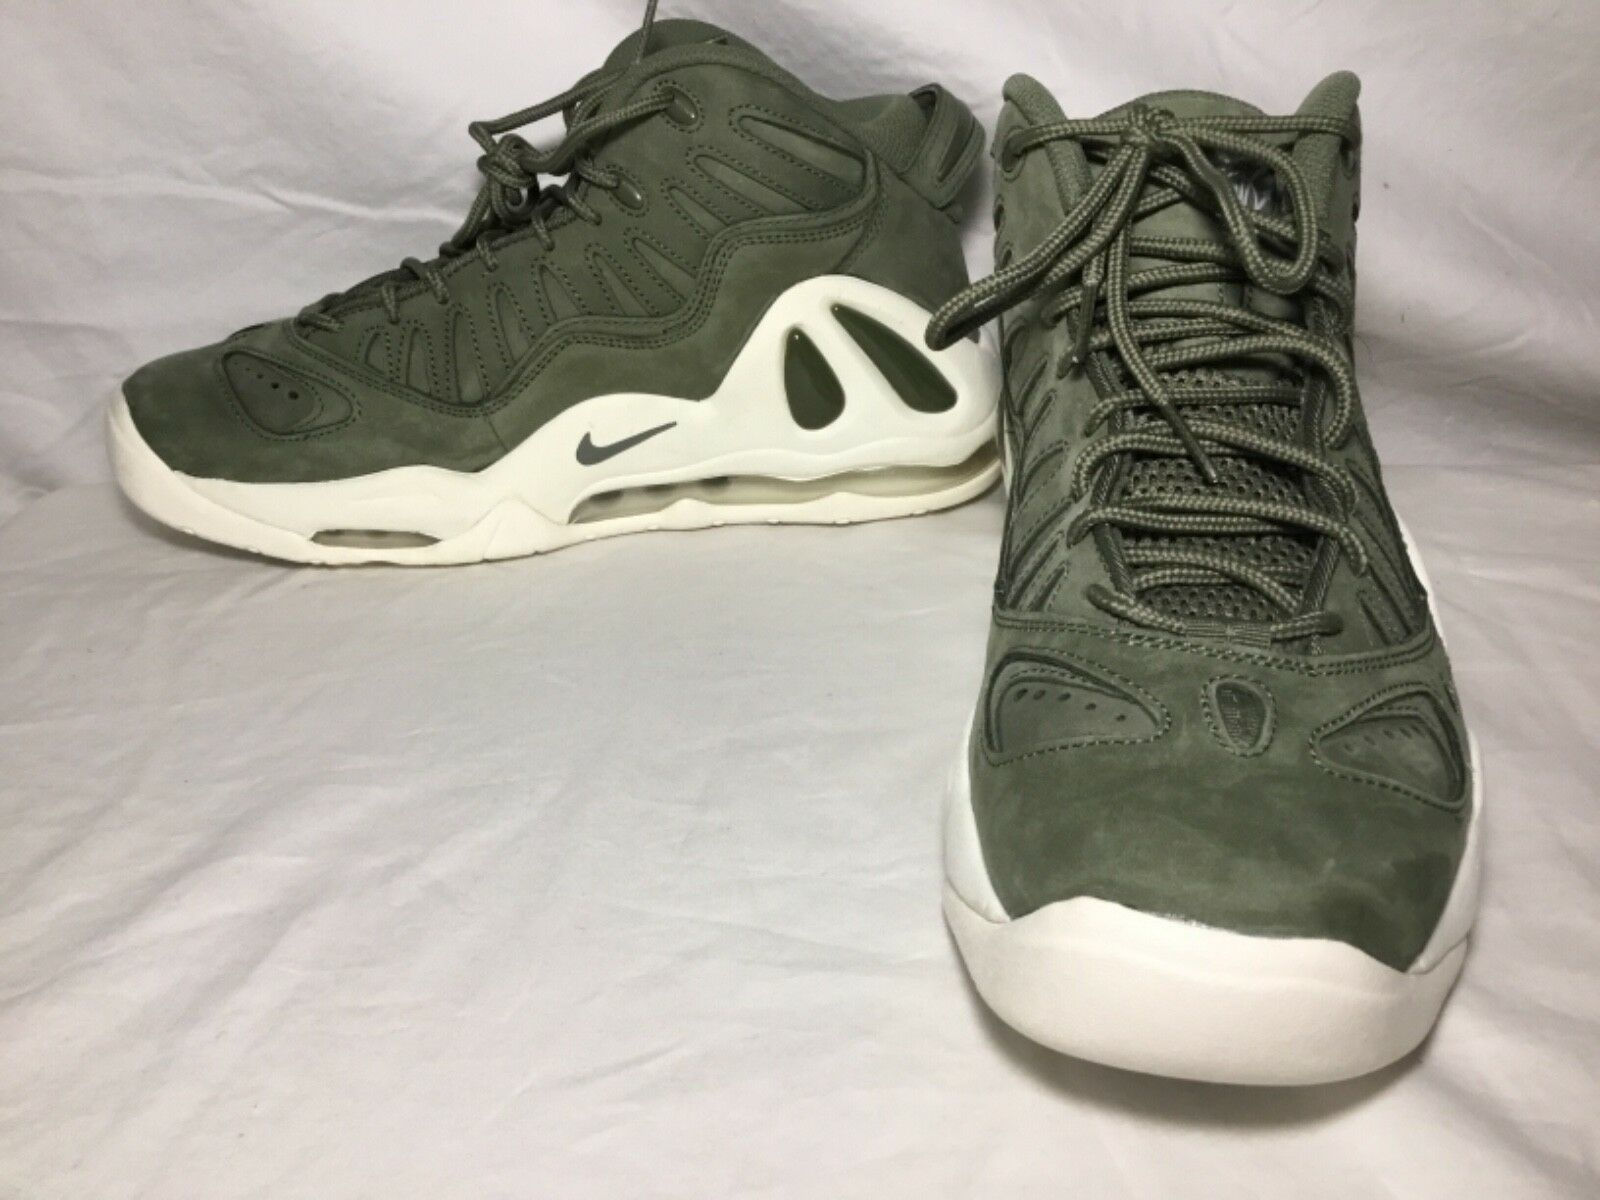 Nike Air Max Uptempo 97 Mens Basketball, Urban Haze/White Sz 9.5 The most popular shoes for men and women